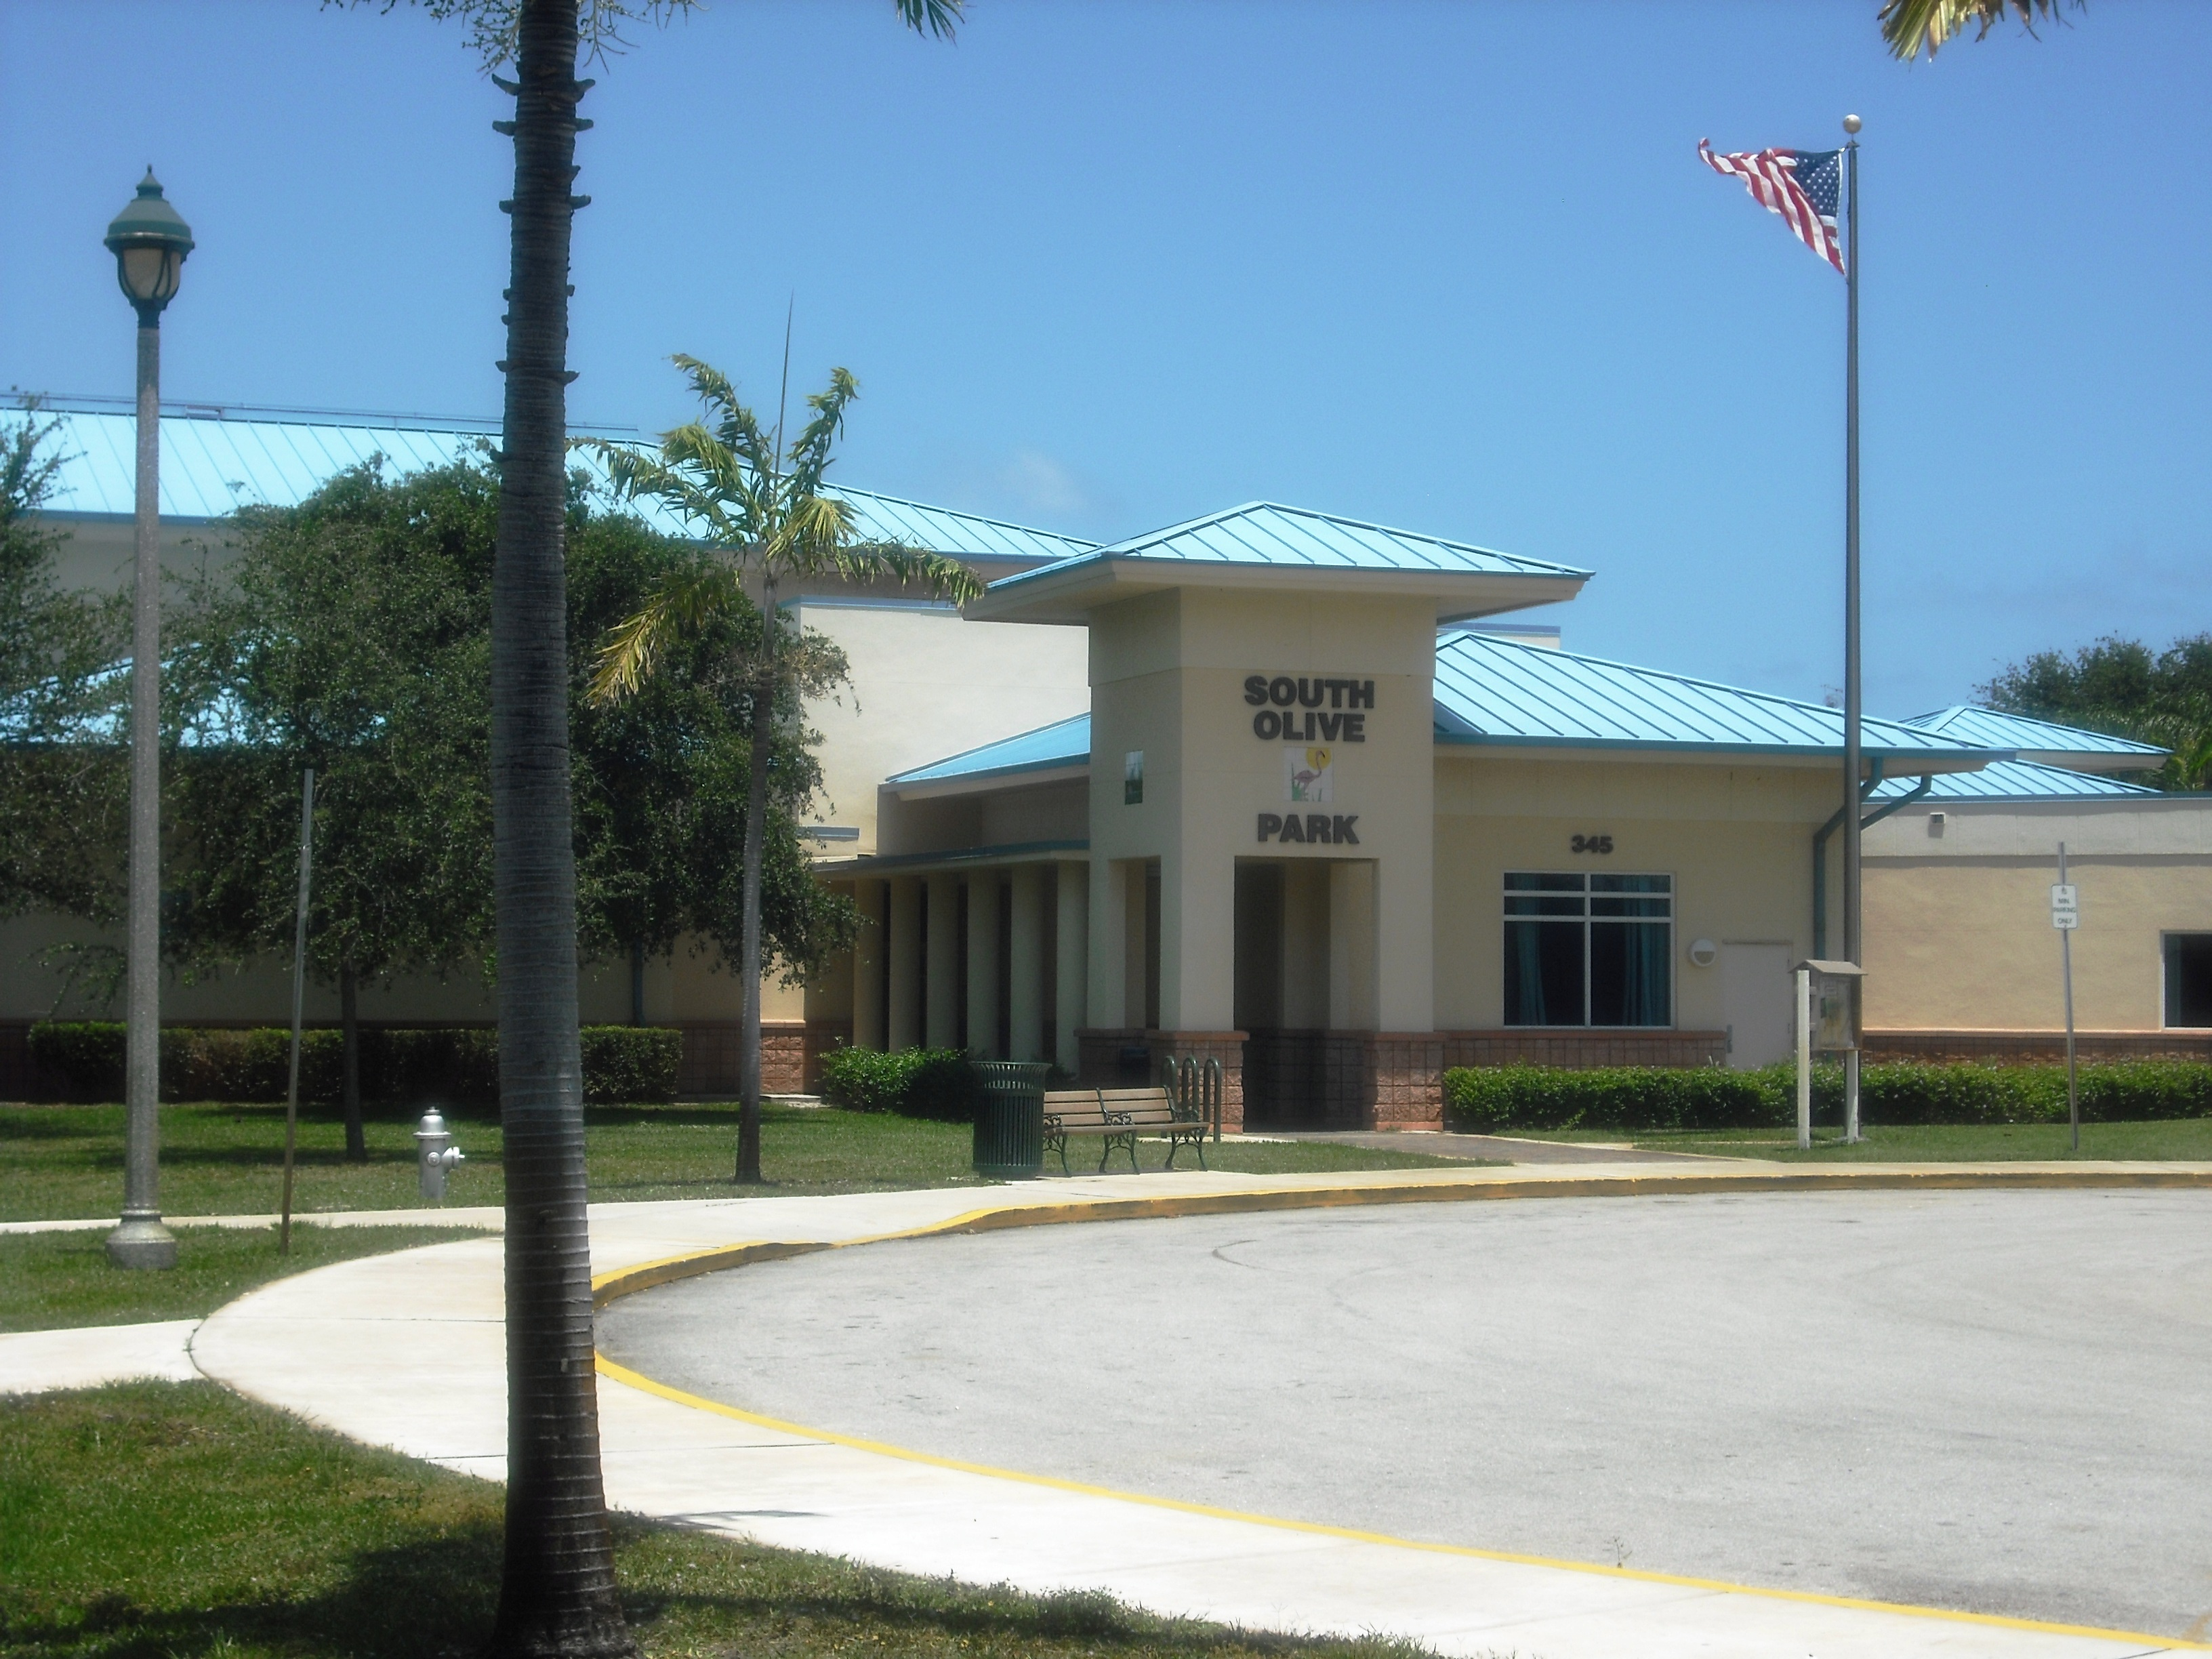 South Olive Community Center West Palm Beach Fl